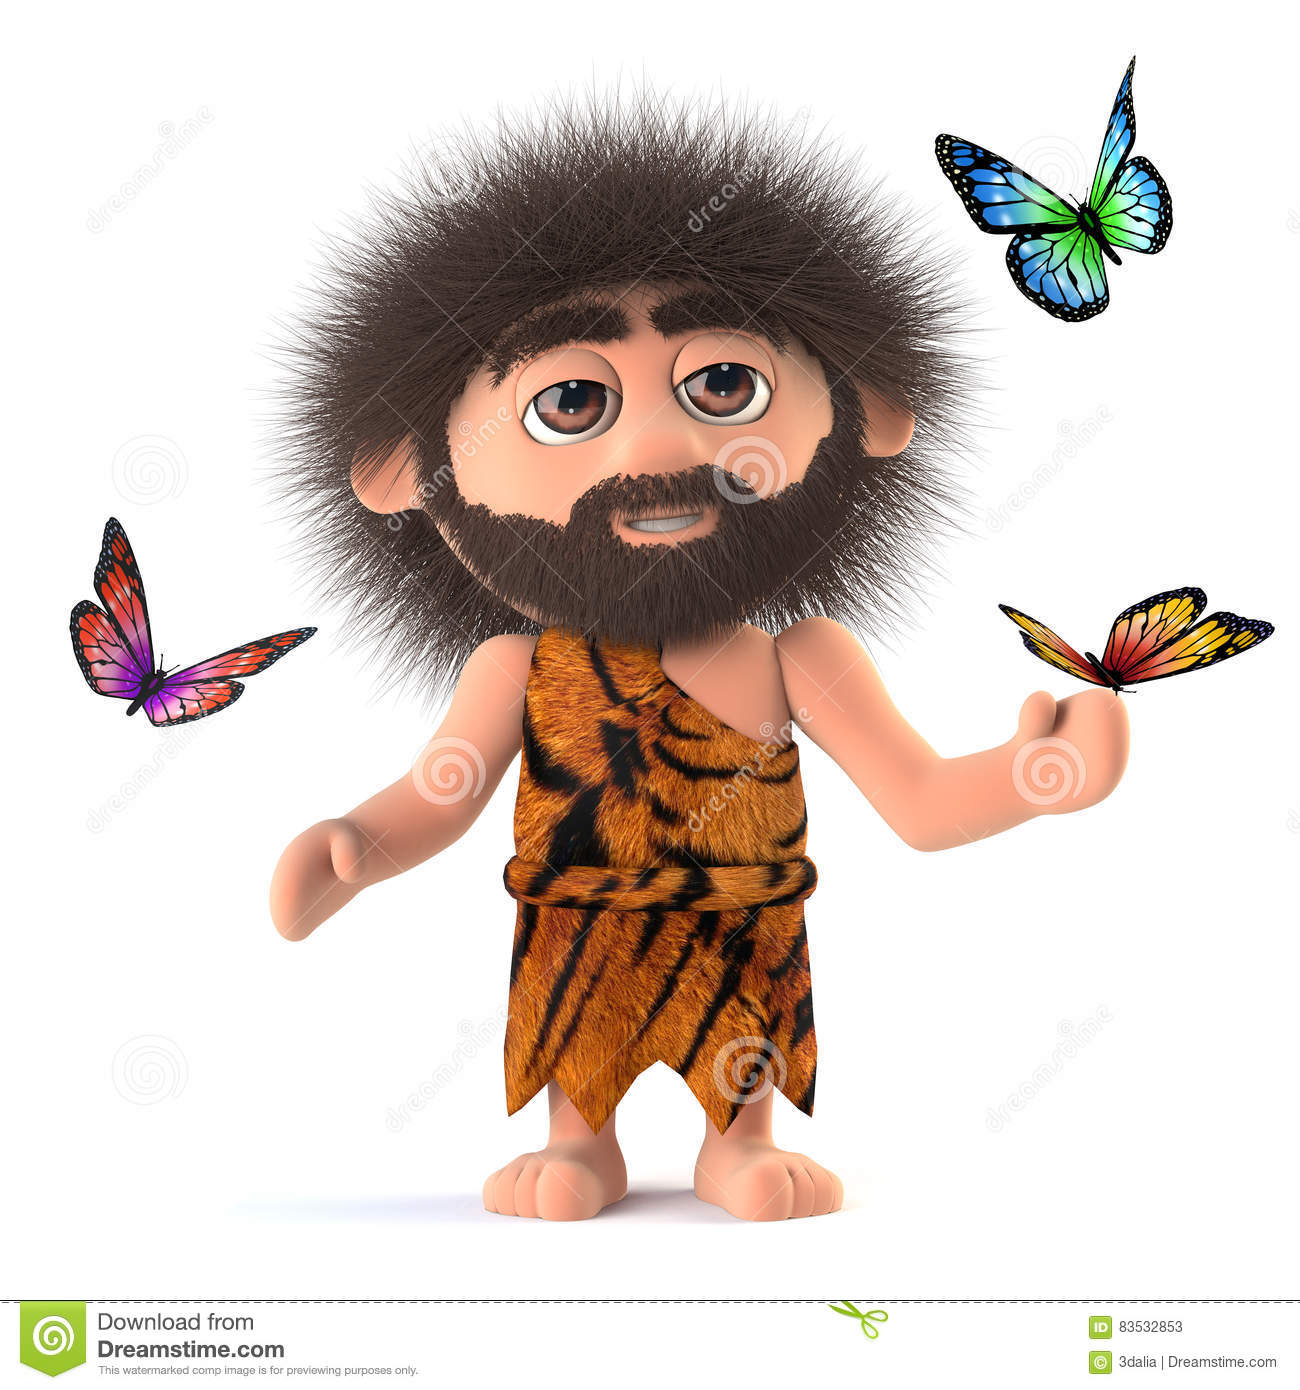 Caveman Stick : D crazy hairy caveman holding a stick of candy royalty